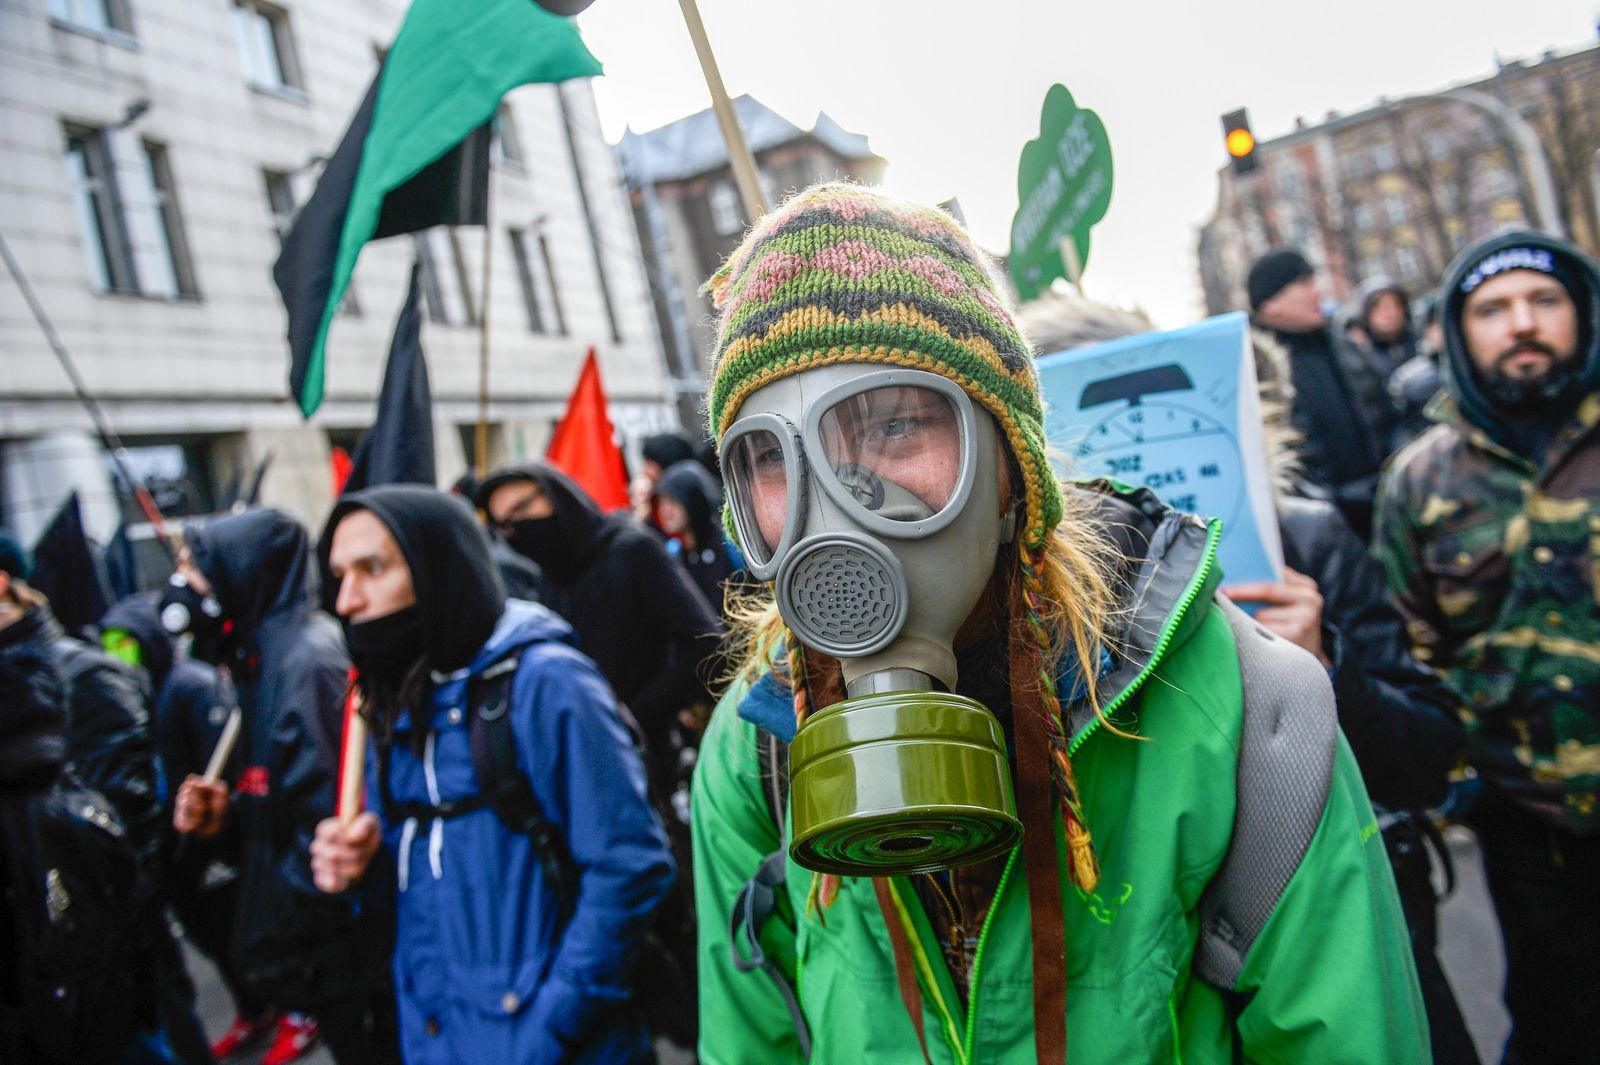 A woman seen using a gas mask during the March. March for